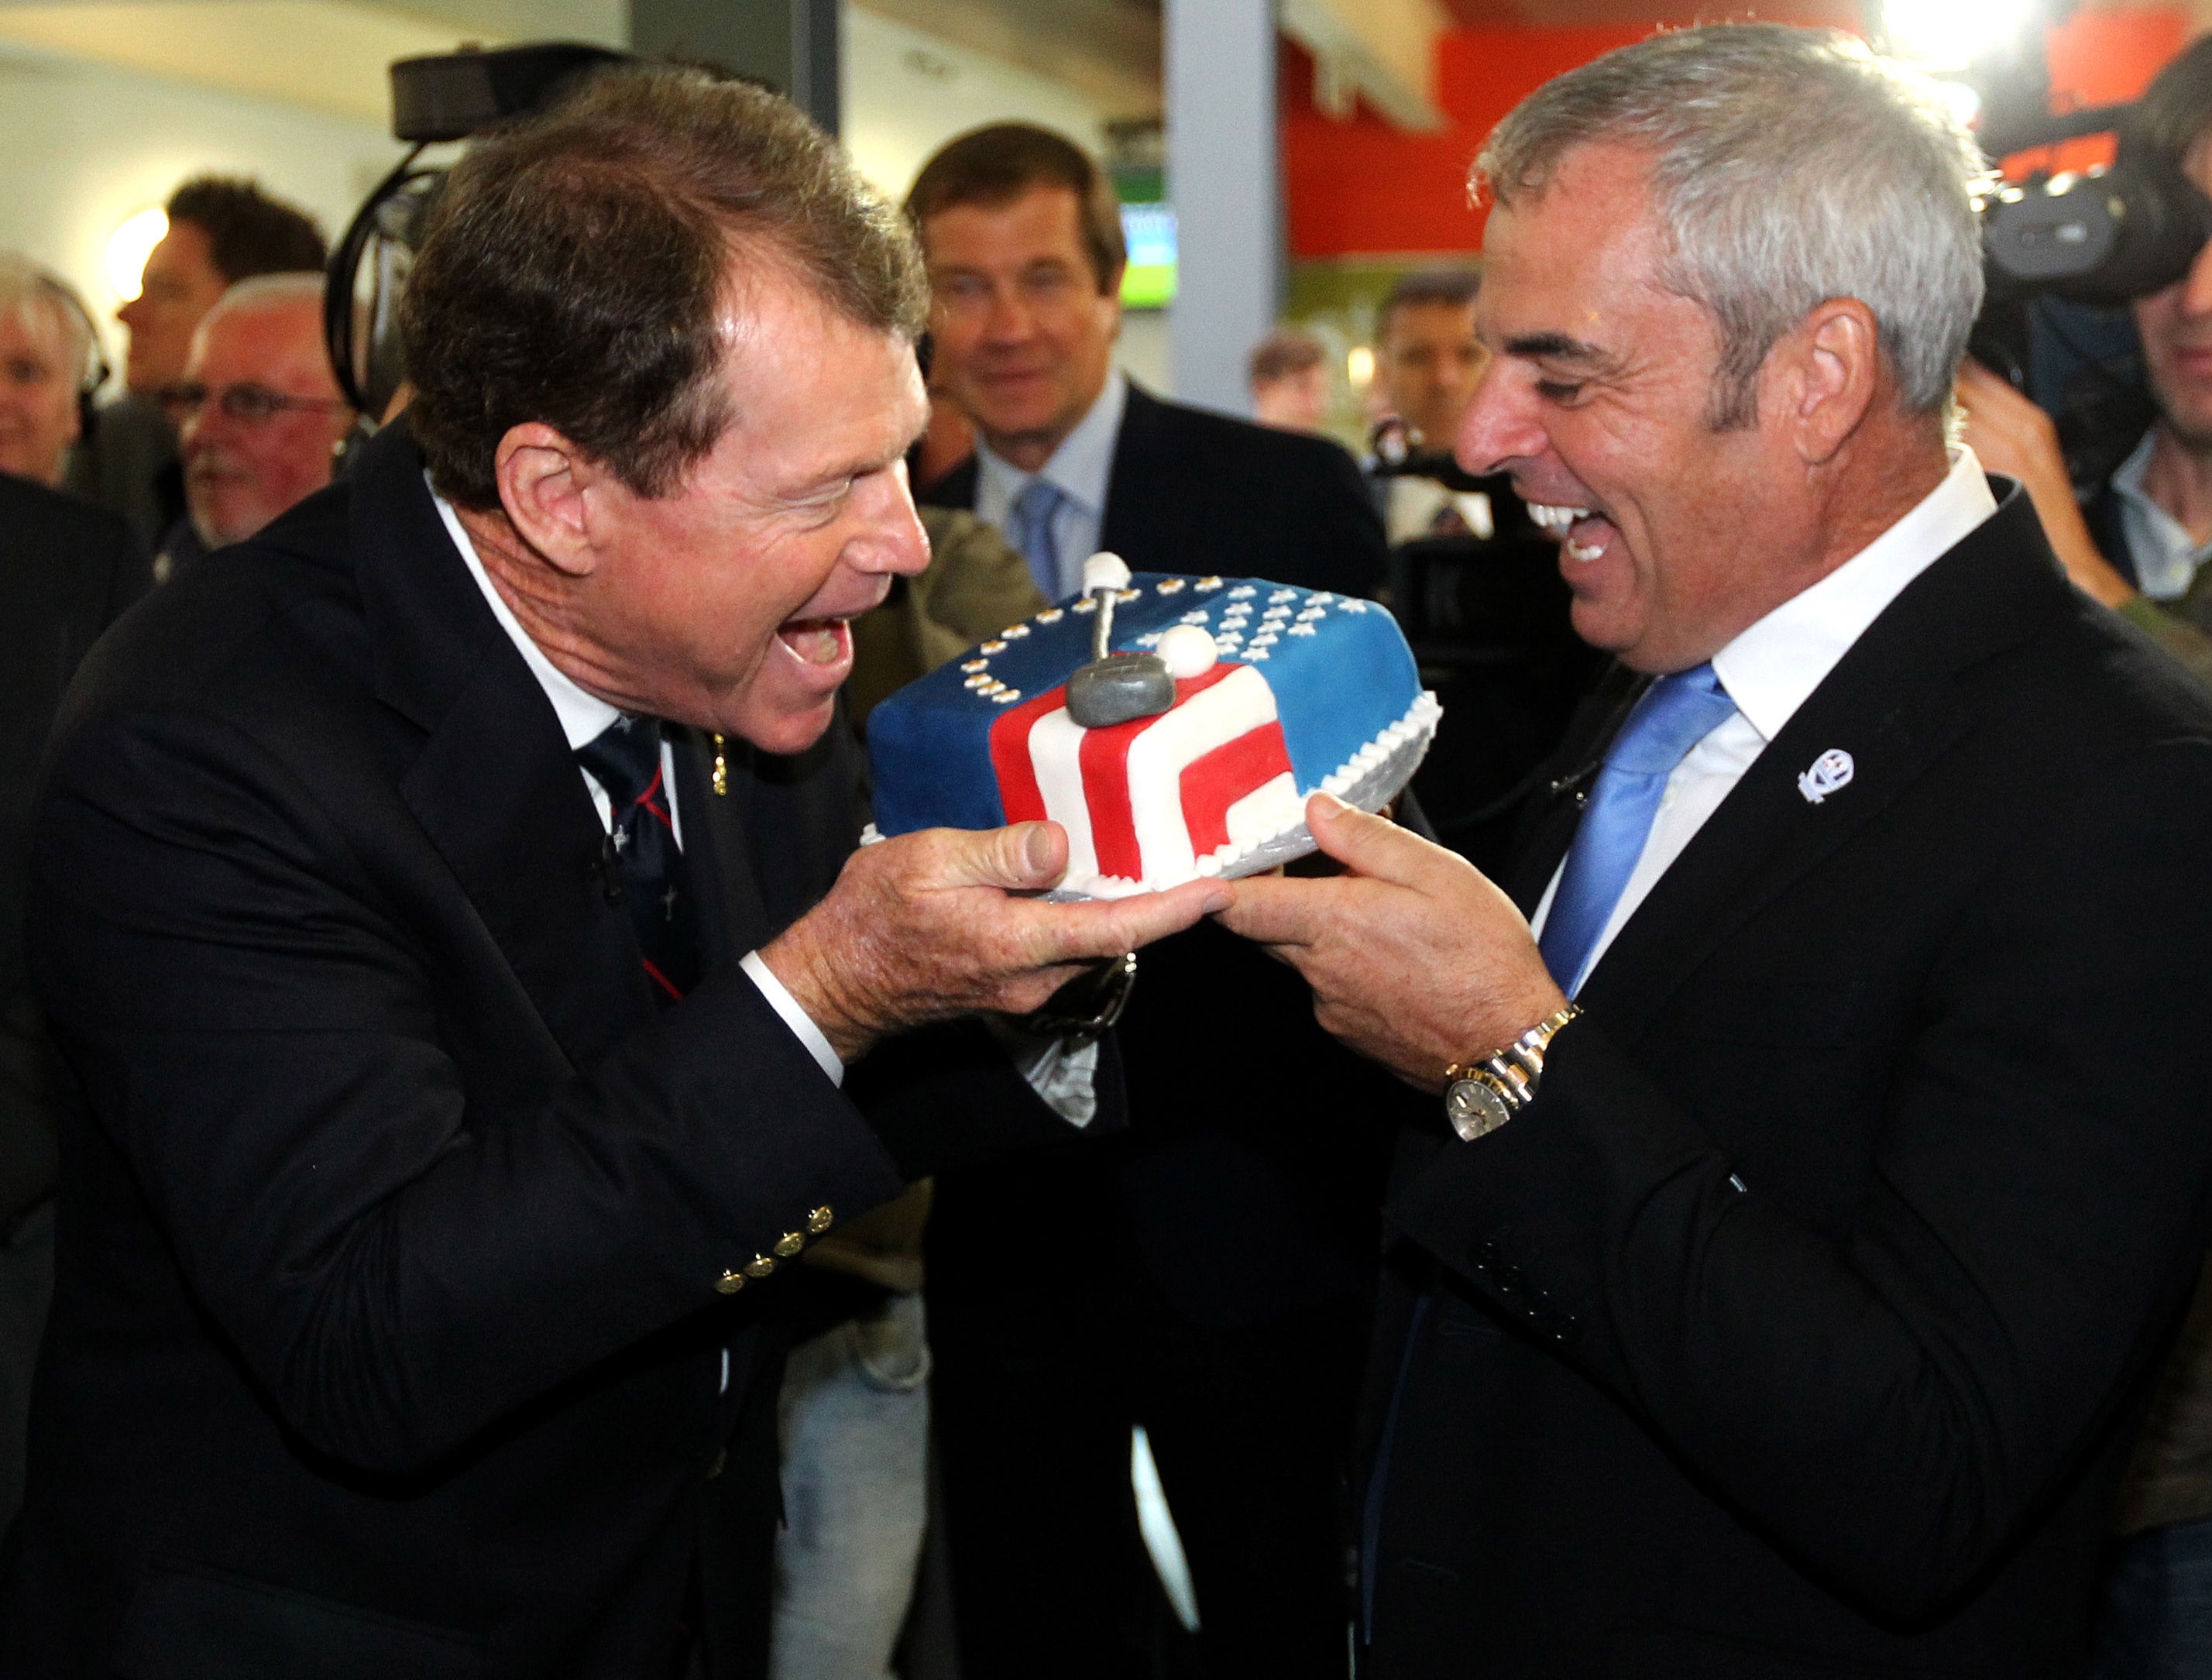 European Ryder Cup Captain Paul McGinley, right, and US Ryder Cup Captain Tom Watson, pretend to eat a cake covered in icing to represent their teams' flags, during a visit to Auchterarder Primary School, Perthshire,  Scotland, in Scotland, Tuesday Sept. 24, 2013